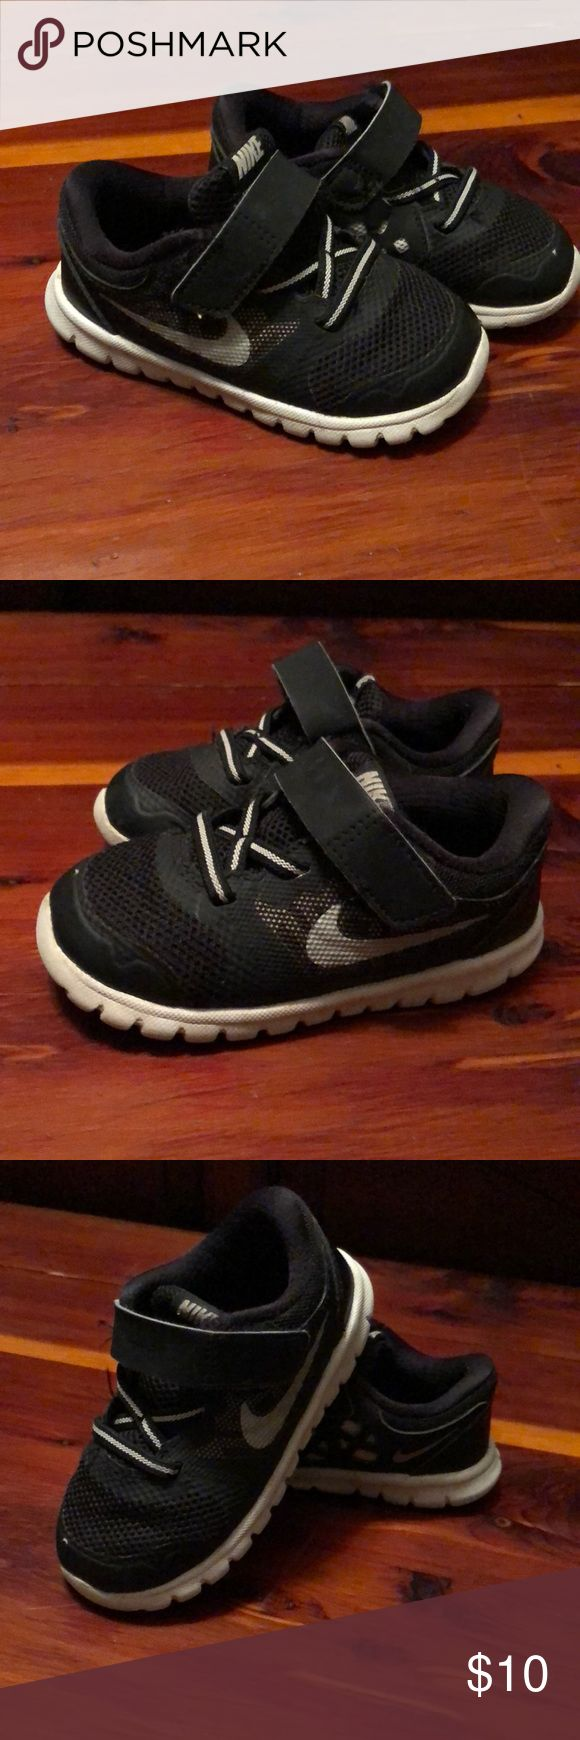 Nike Flex Infant Toddler Shoe Size 7 Gently worn, no holes, rips, or stains. Little nick on toe (see pic). Very cute! Nike Shoes Sneakers